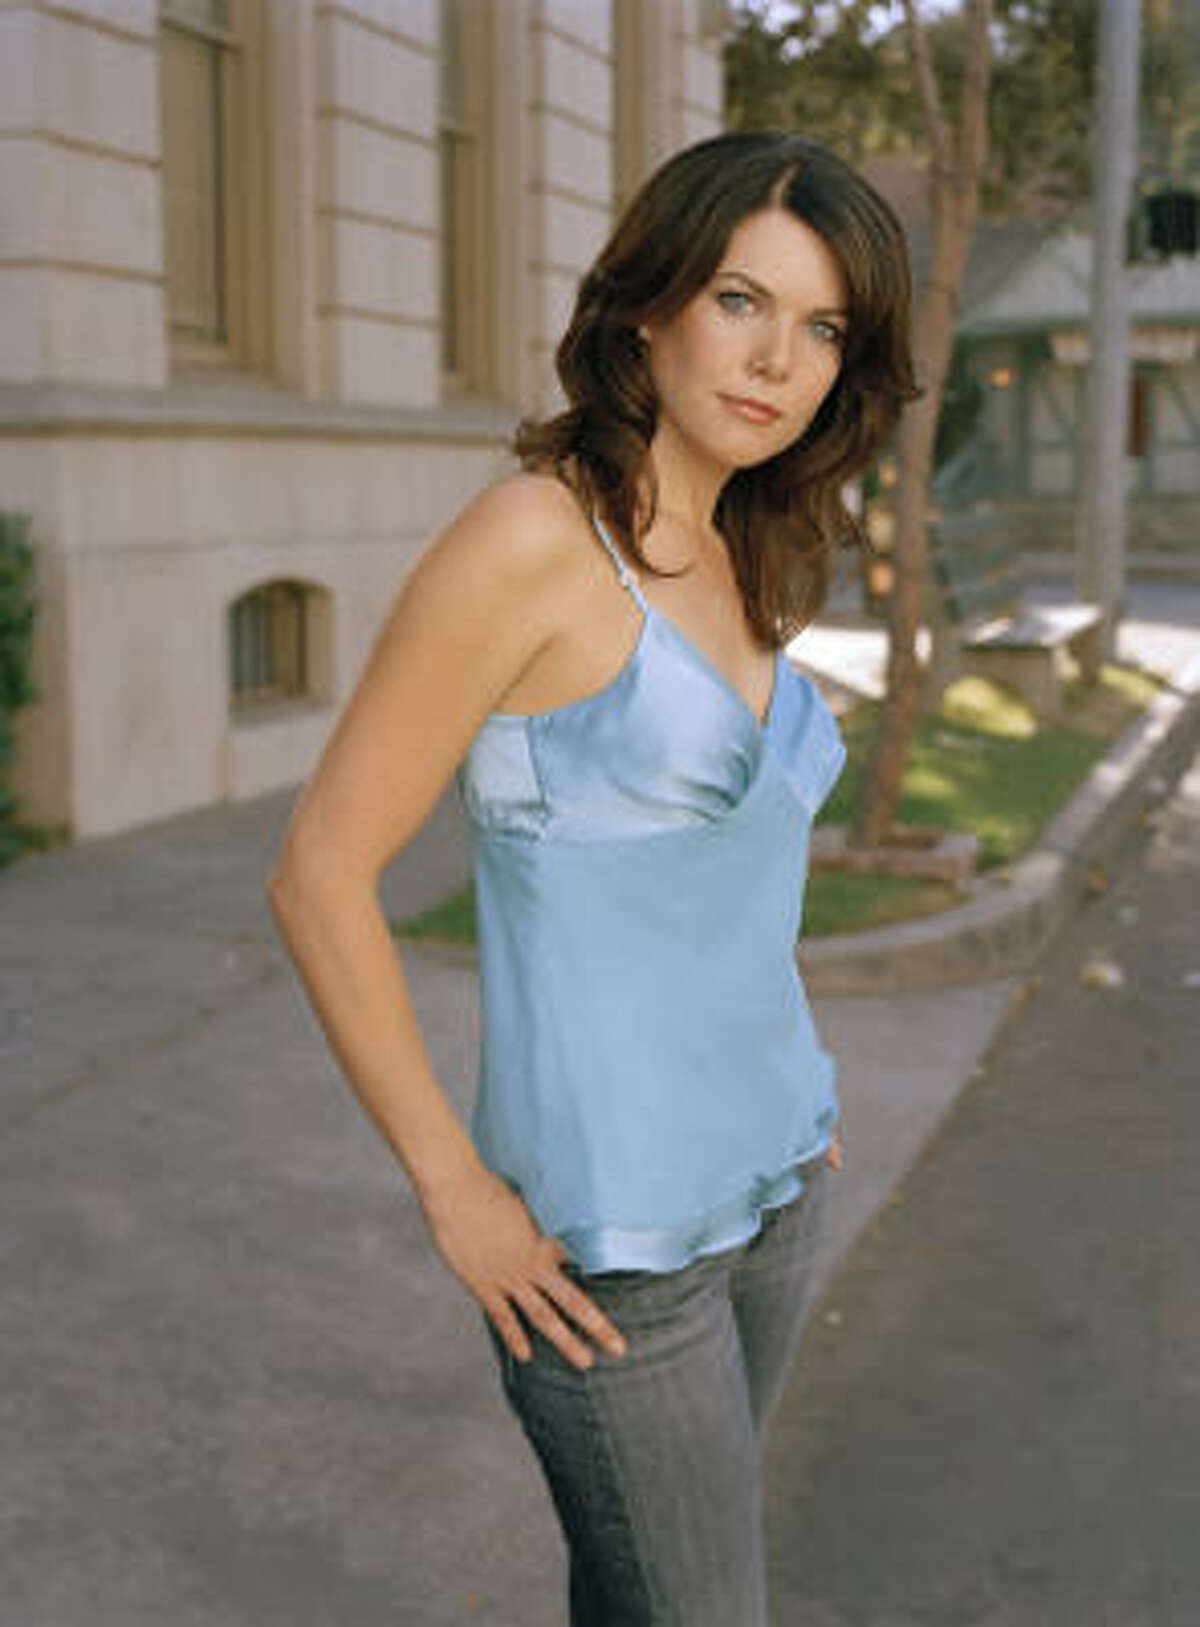 Lorelai: Lorelai Gilmore had her daughter, Rory, at the age of 16 and moved from her well-to-do parents' home to the small town of Stars Hollow, Conn.